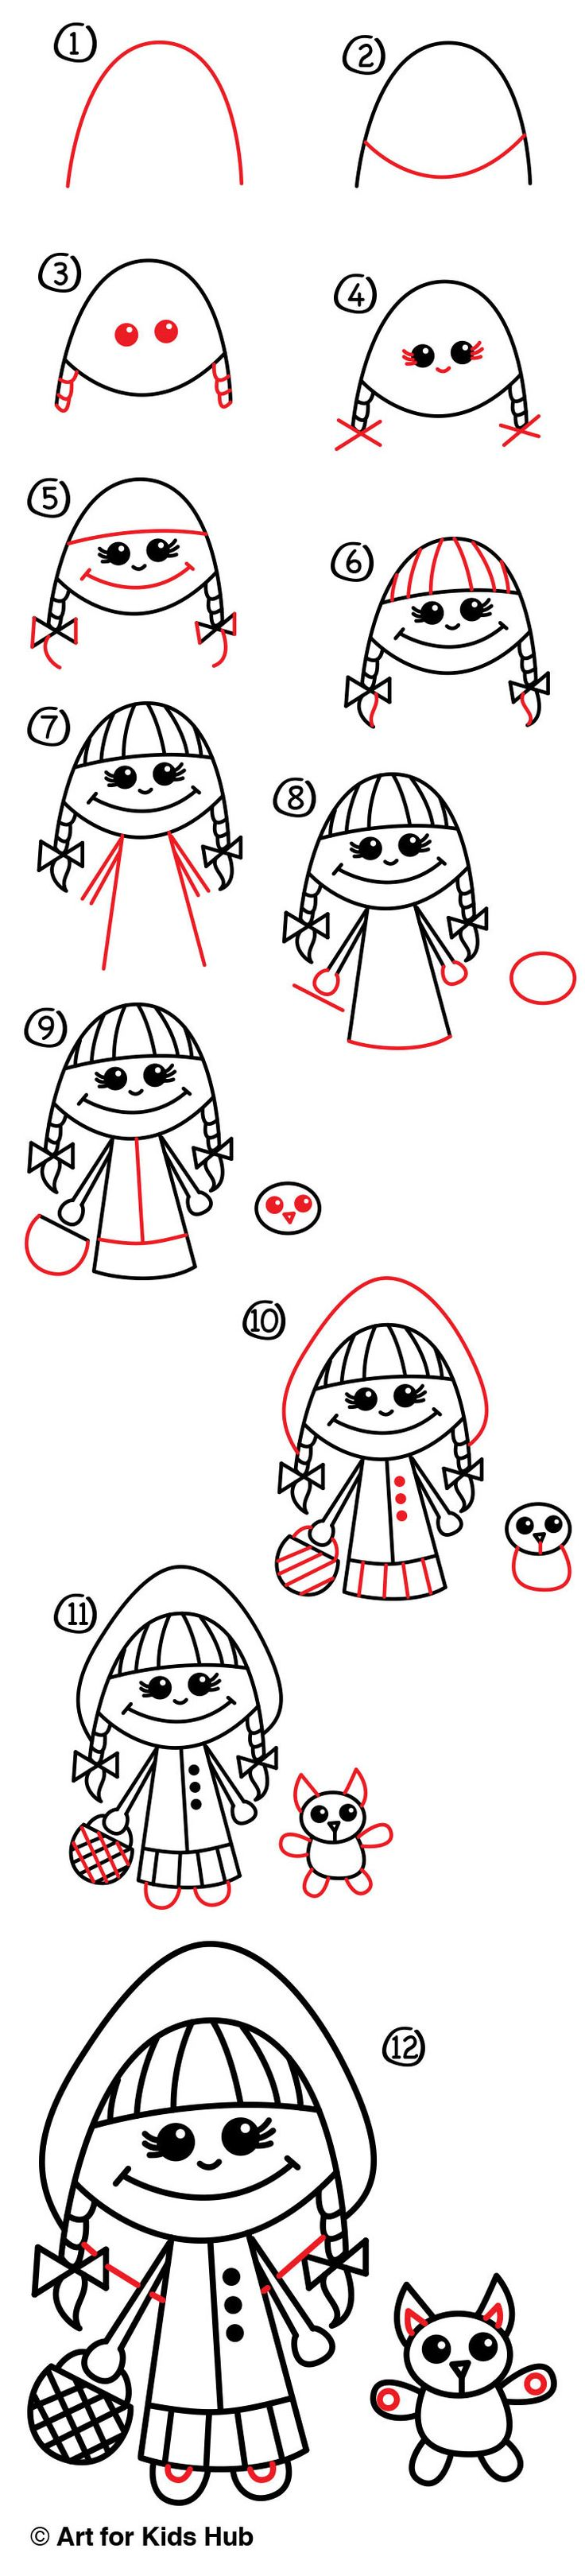 Red color code wolf online - How To Draw Little Red Riding Hood Art For Kids Hub